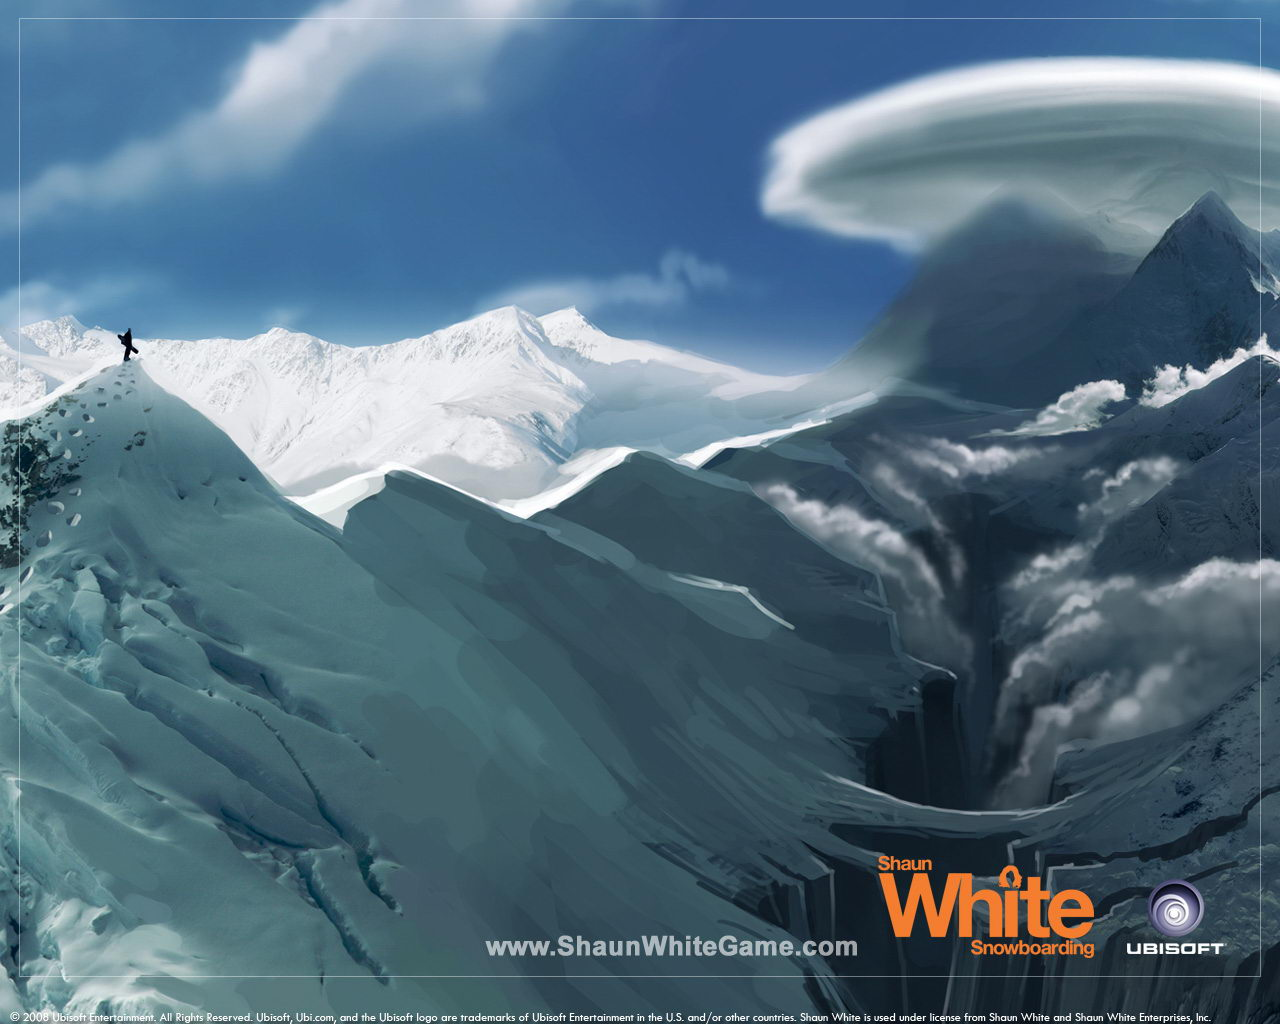 snowboarding wallpaper mountain peaks wallpaper mountain peaksjpg 1280x1024